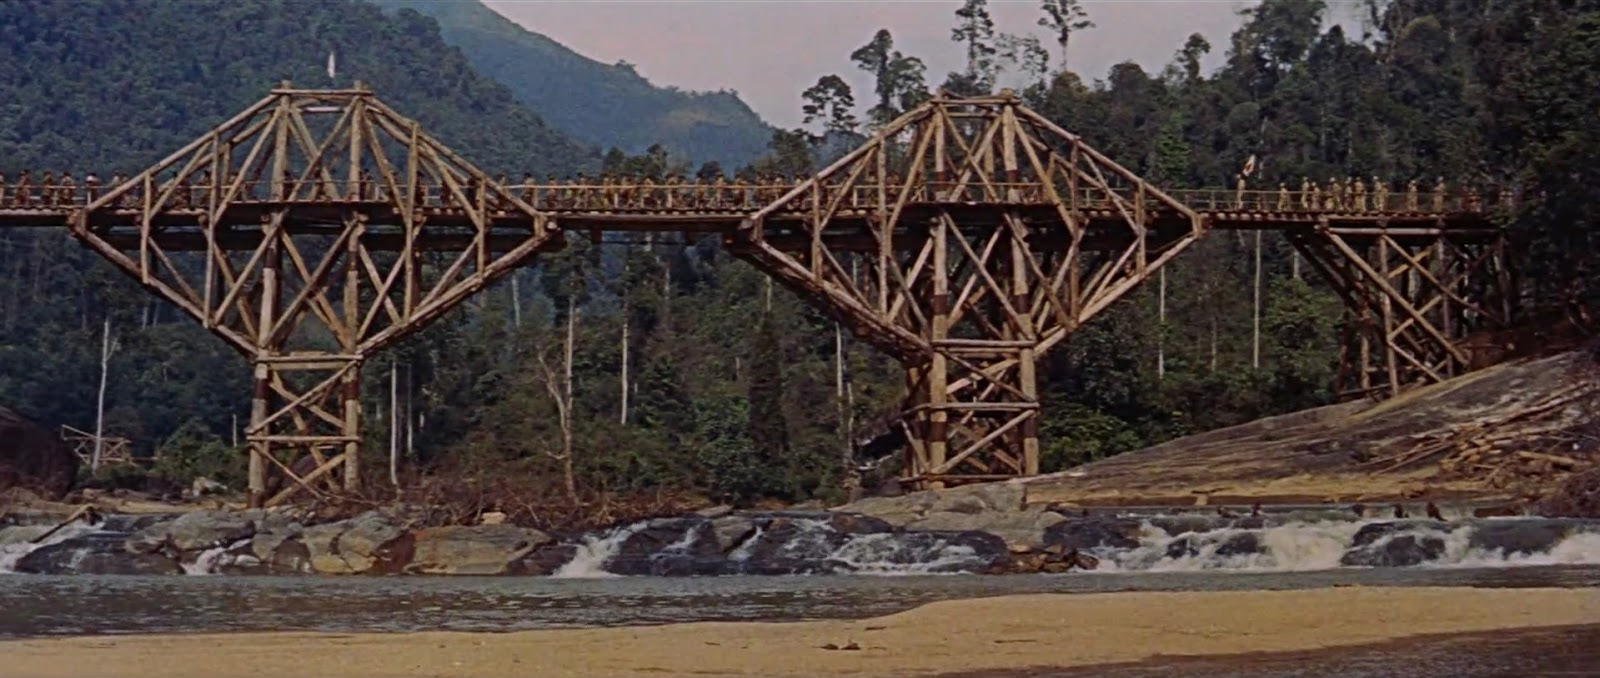 the bridge on the river kwai The bridge on the river kwai the bridge on the river kwai is a character driven war drama about a men with principles standing against the antagonist's camp as a protest with a never yielding spirit the self-righteousness and morale a calculative allegory that symphonizes higher concept.